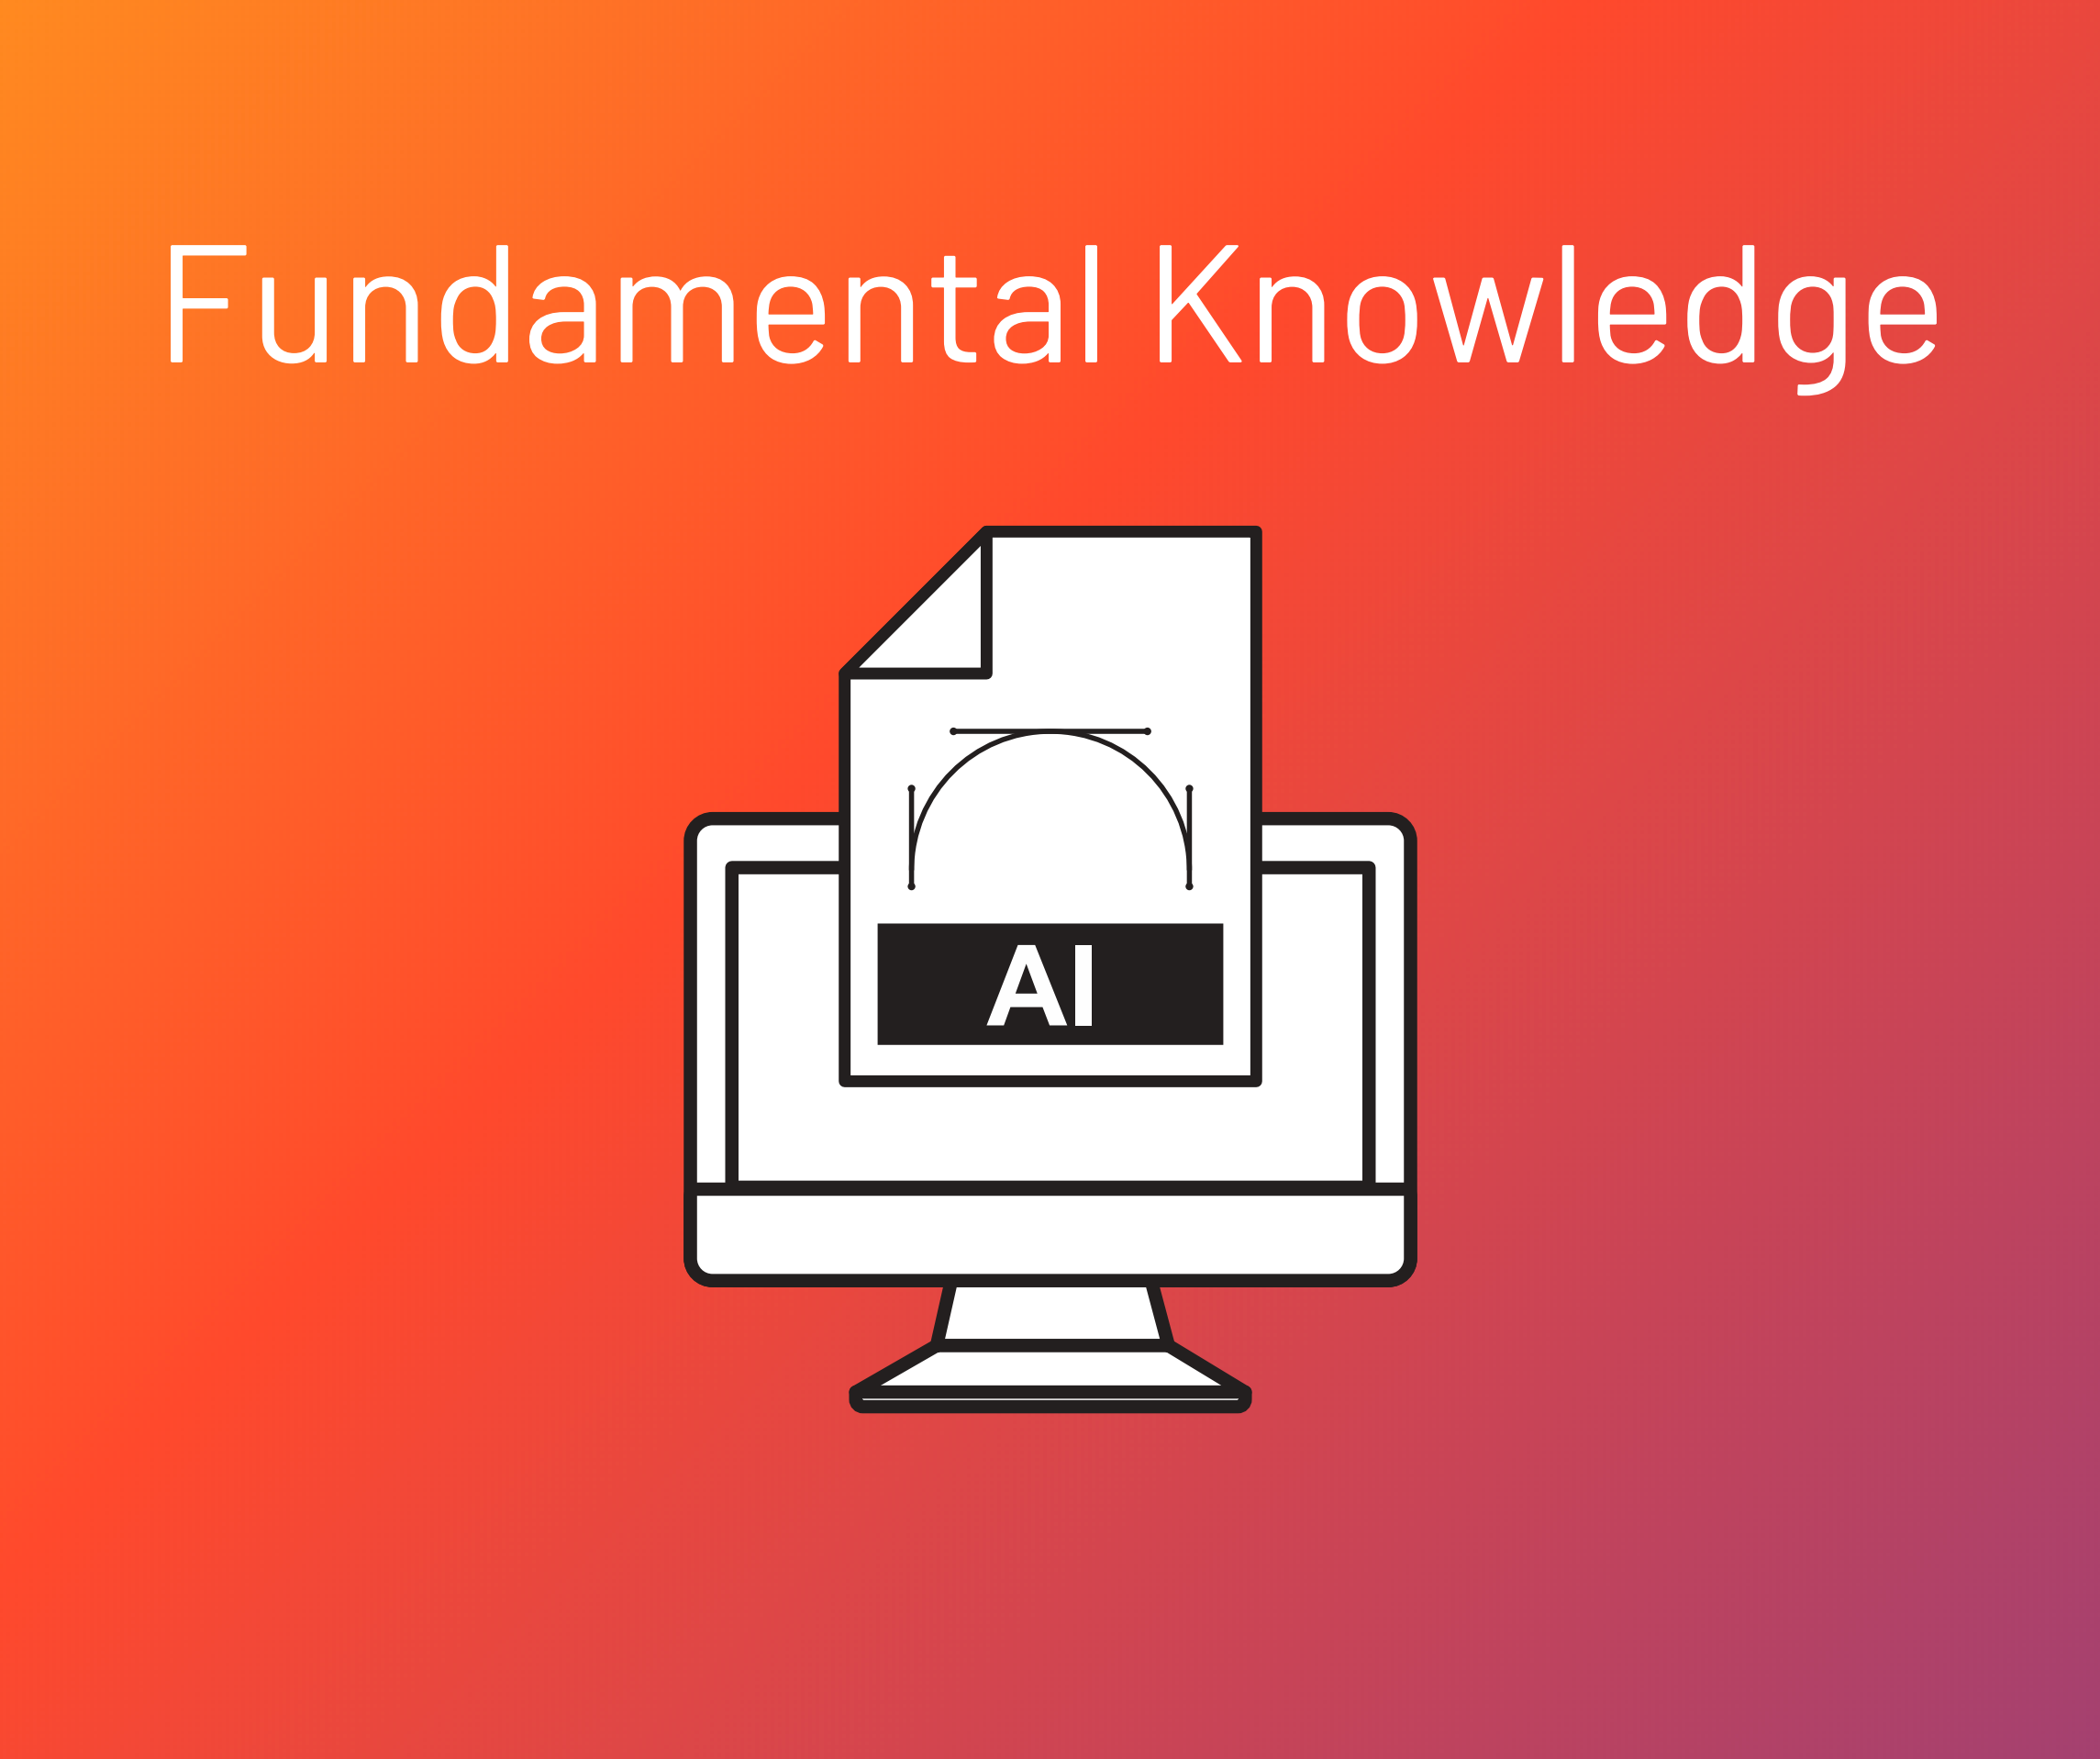 Fundamental Knowledge of Artificial Intelligence